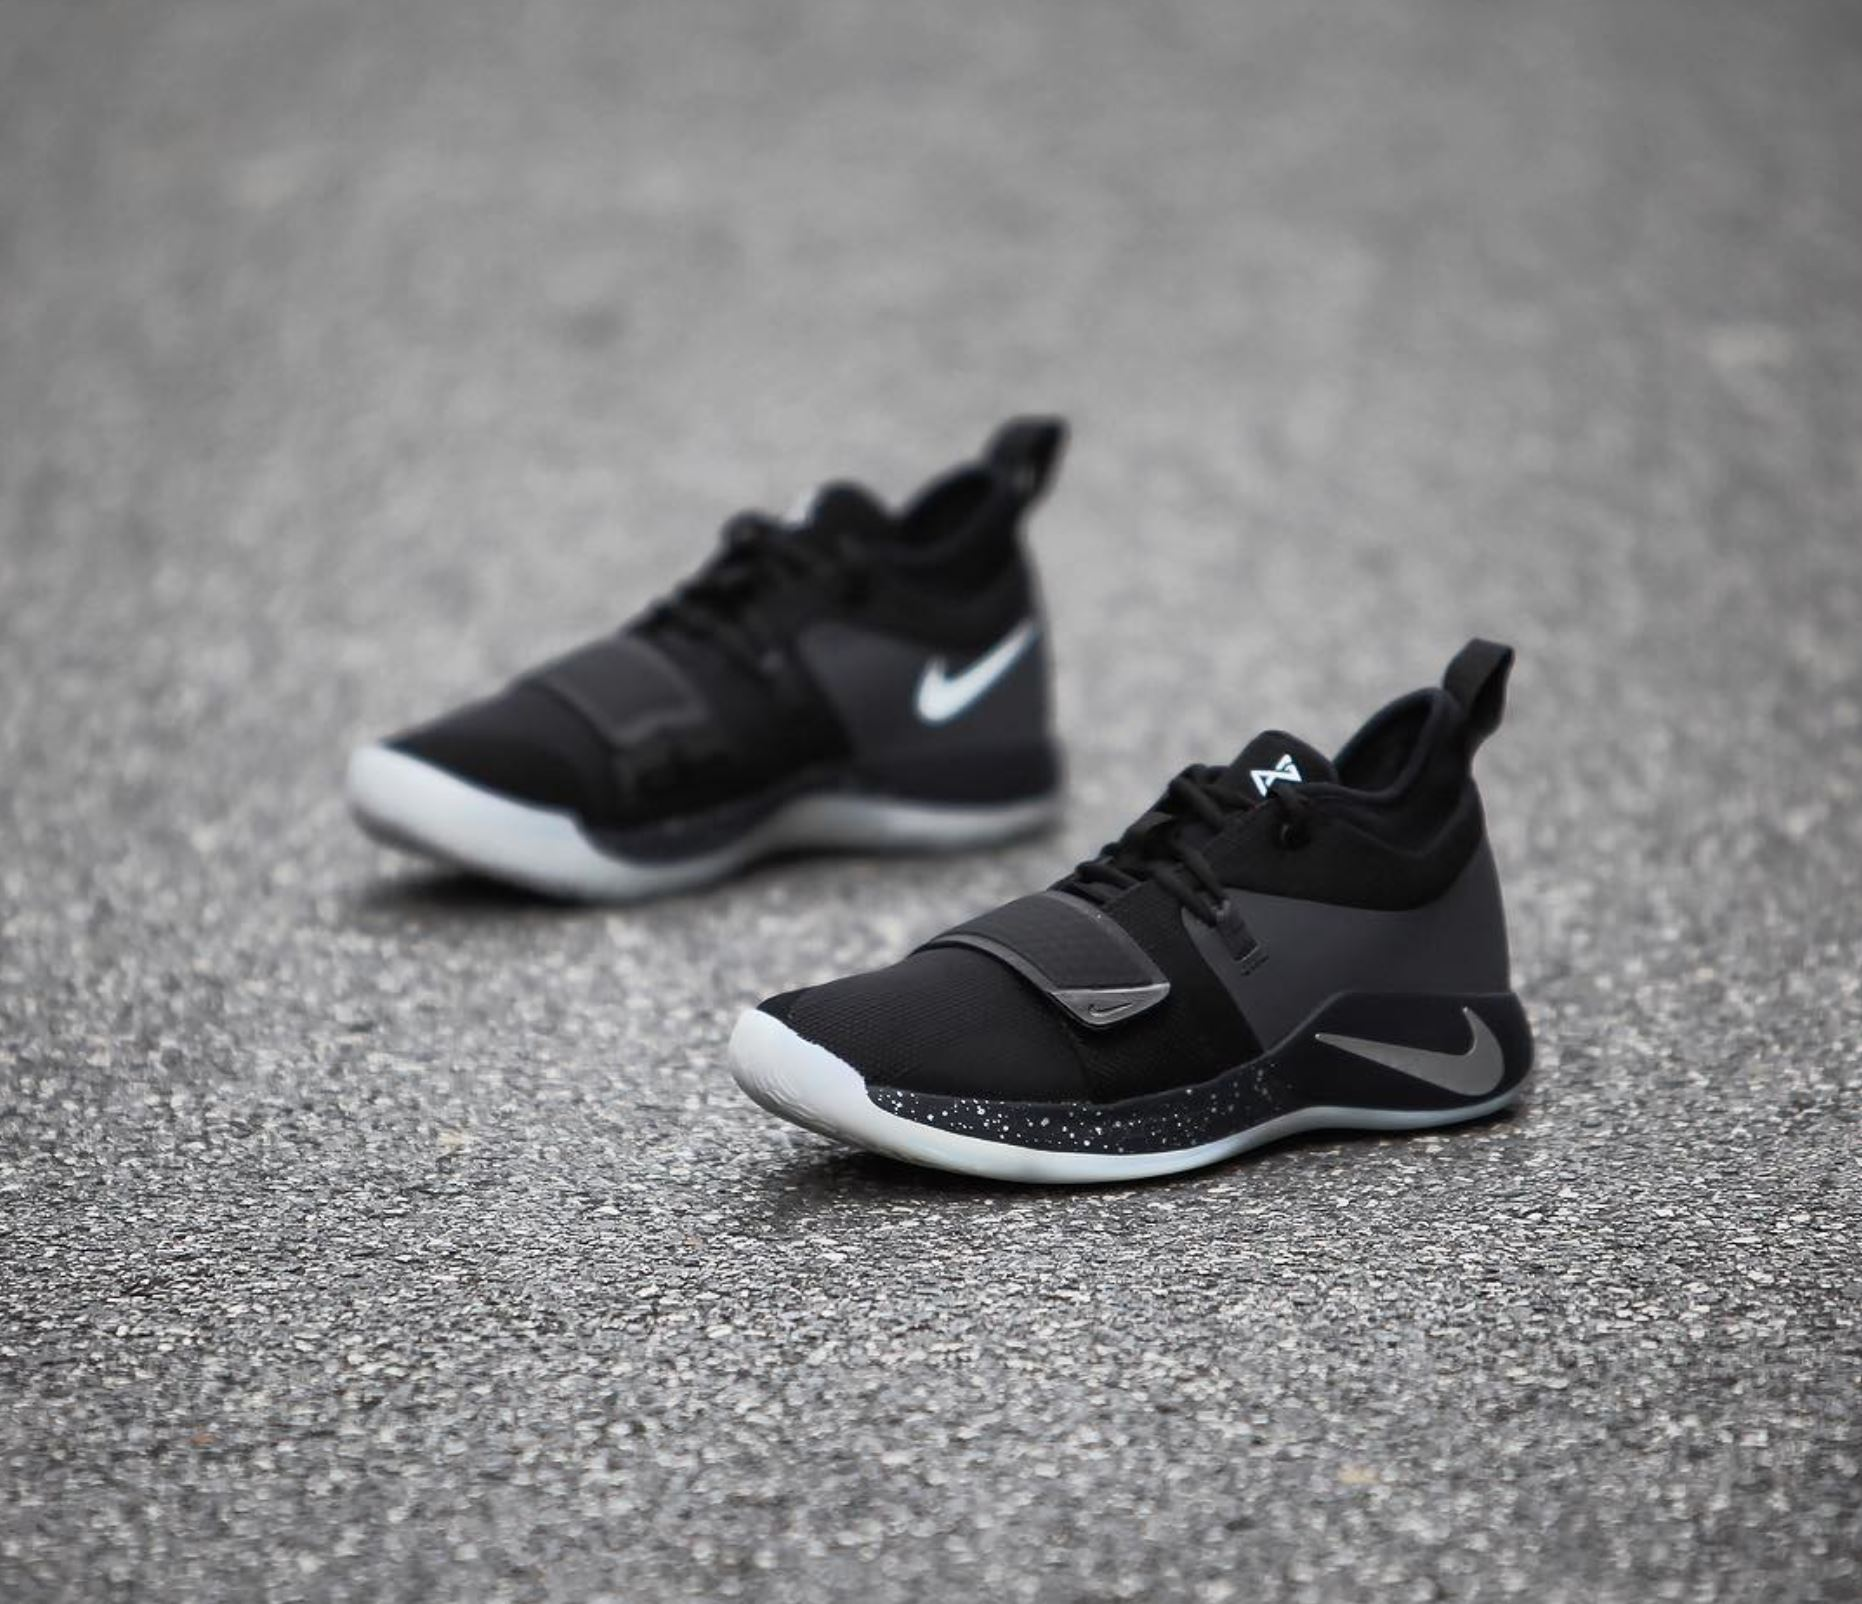 newest 6063a 3acf5 Detailed Look at the Nike PG 2.5, Paul George's Latest Shoe ...